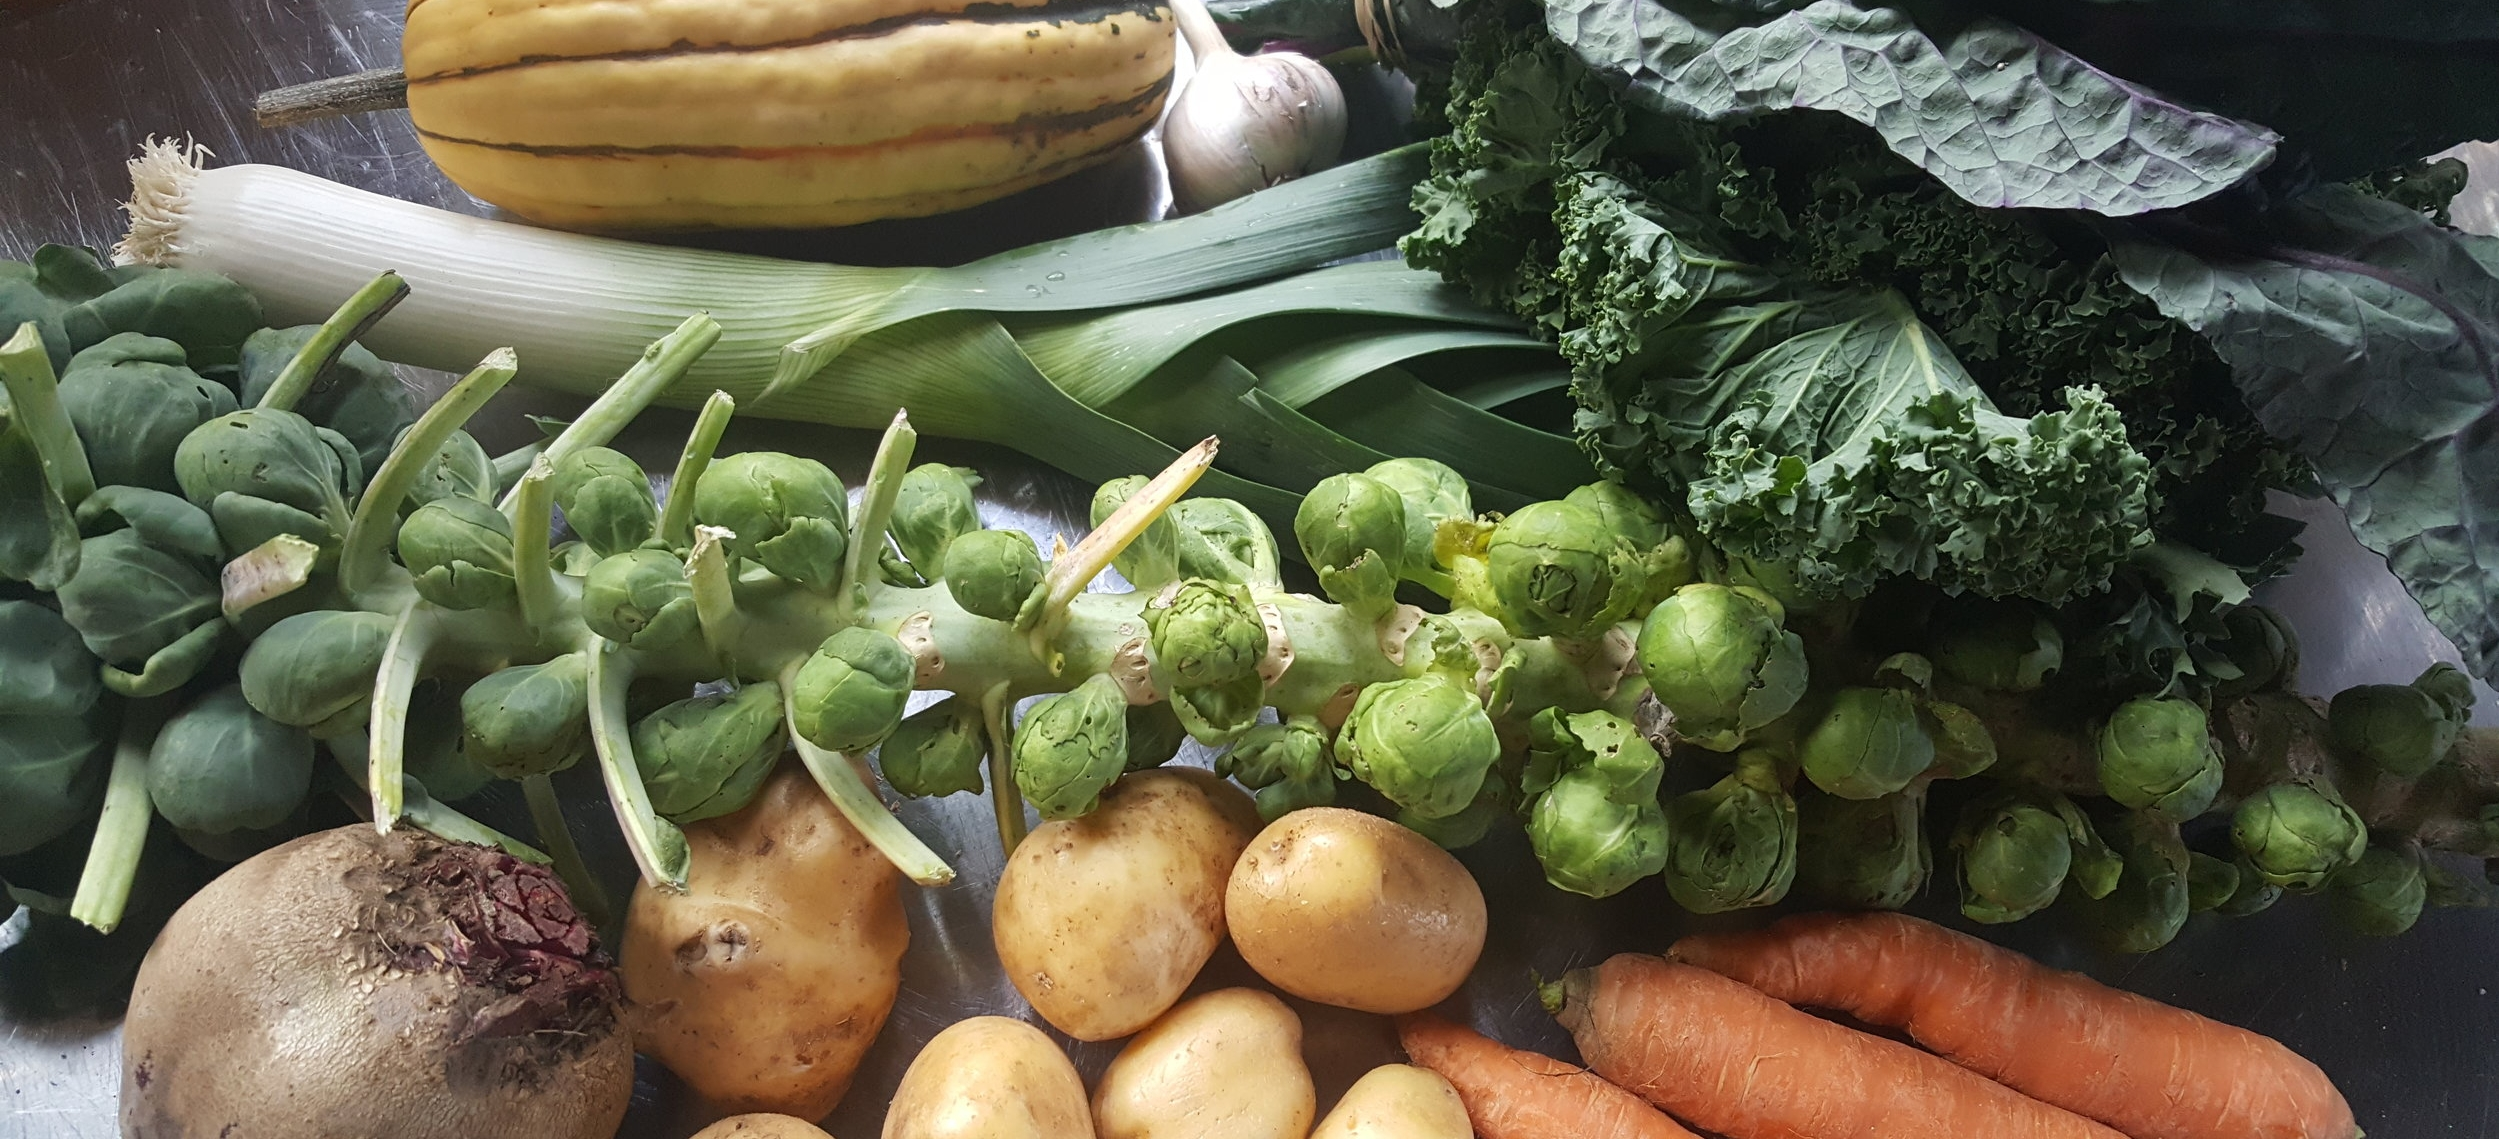 Vegetable Share Options -